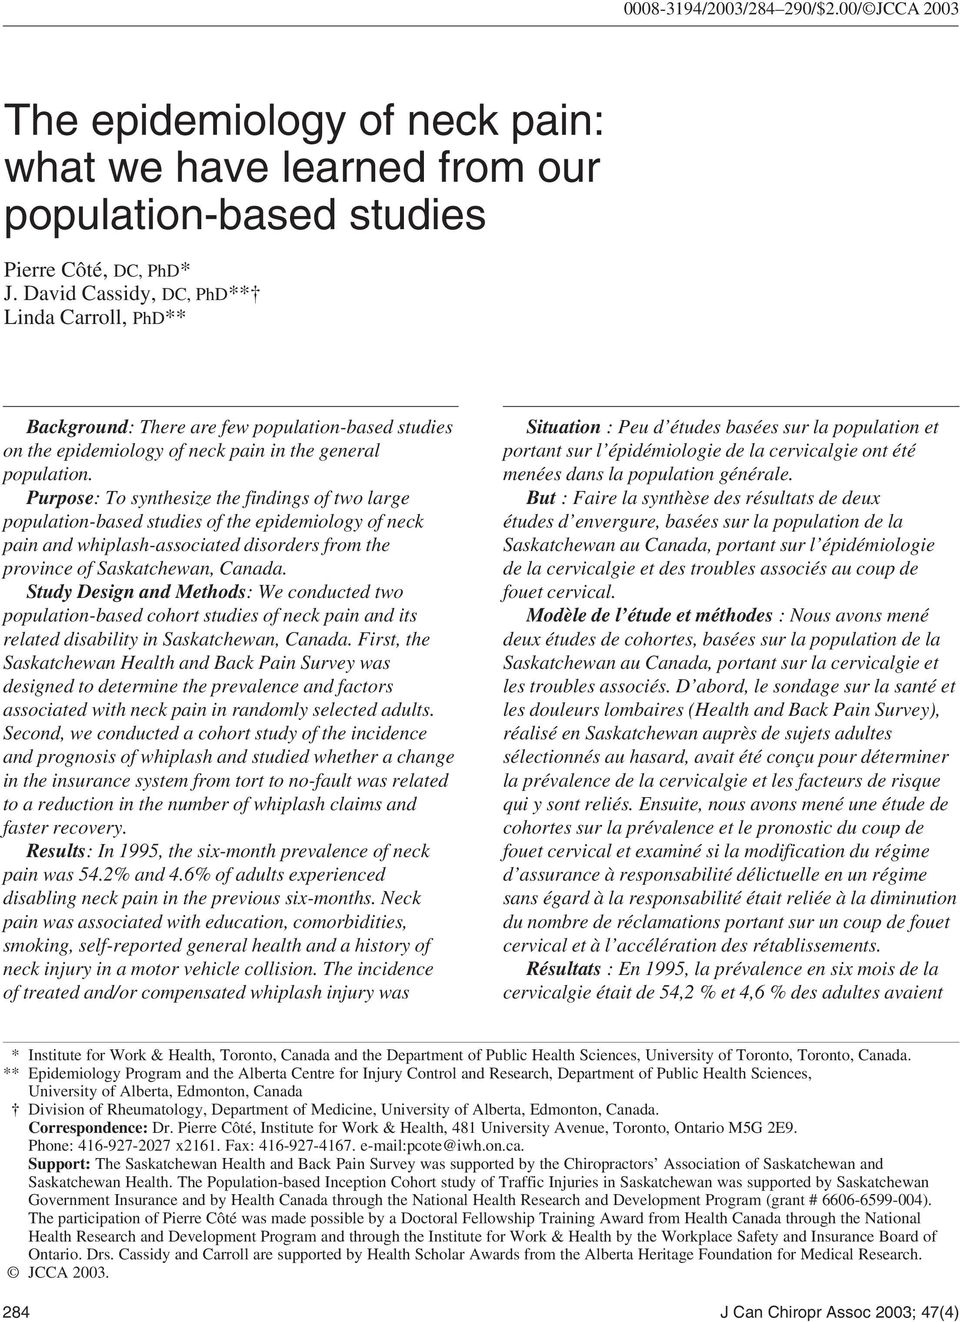 Purpose: To synthesize the findings of two large population-based studies of the epidemiology of neck pain and whiplash-associated disorders from the province of Saskatchewan, Canada.